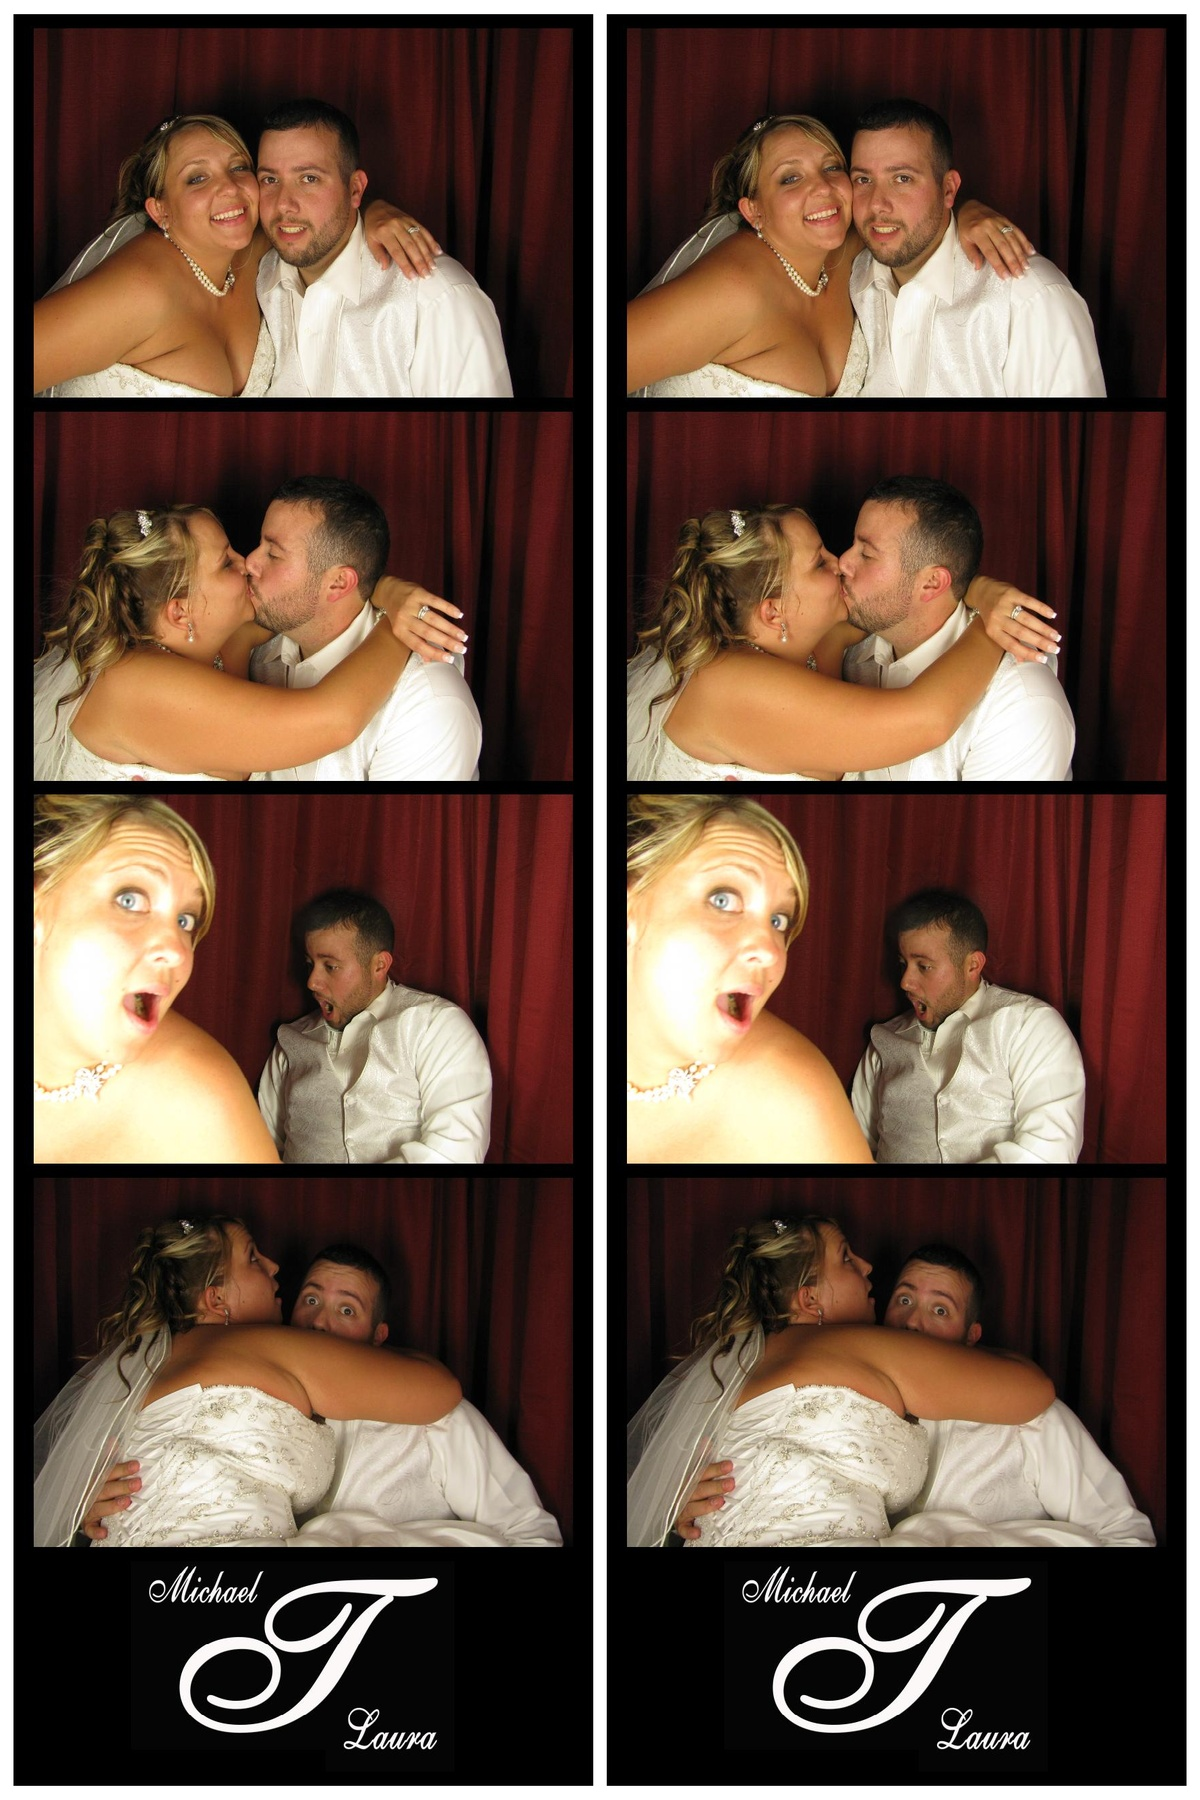 Michael & Laura - Snapshot Photobooths NJ Photo Booth Rentals